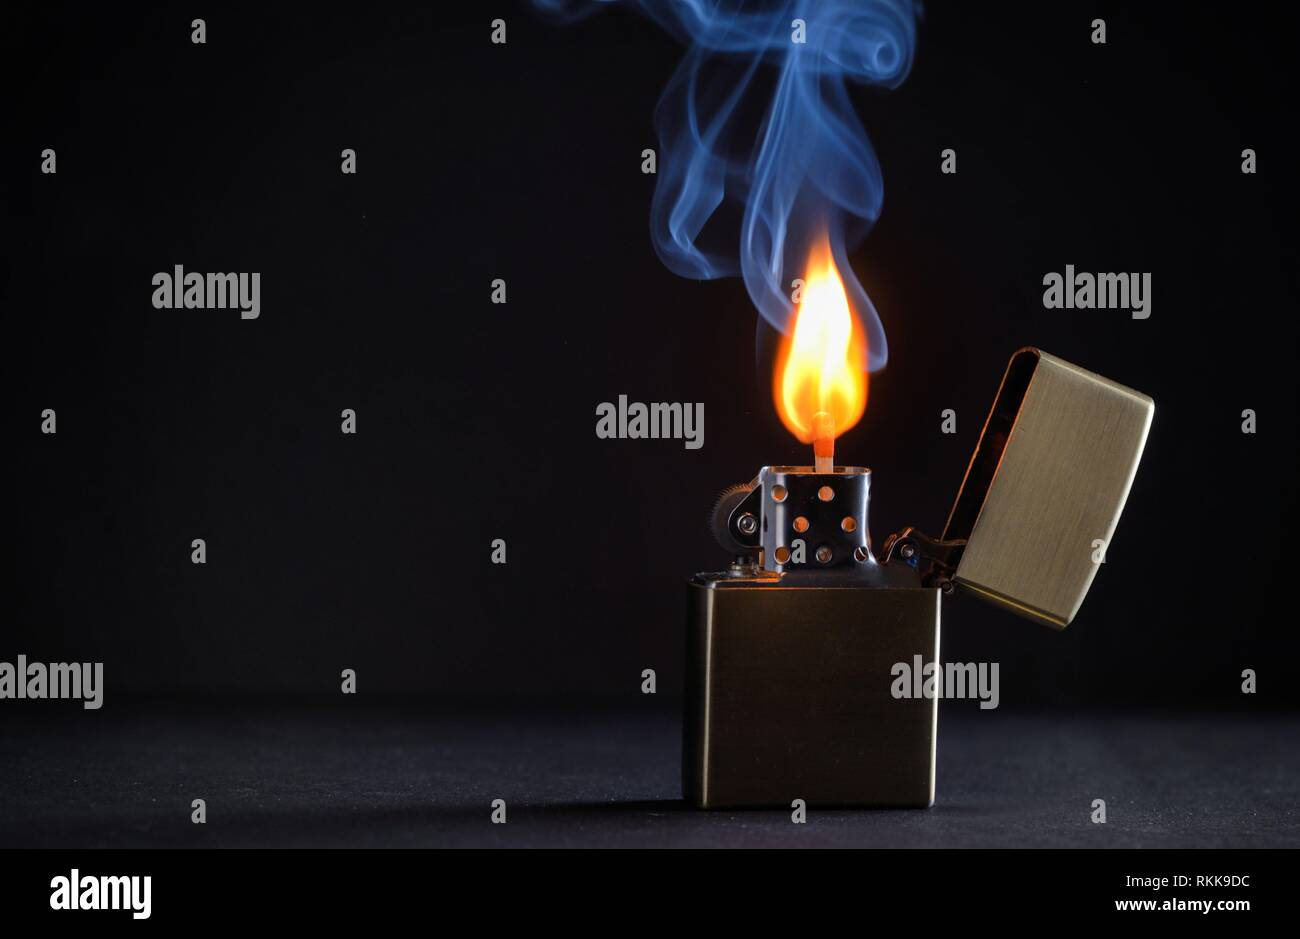 Concept golden metal lighter and smoke. - Stock Image